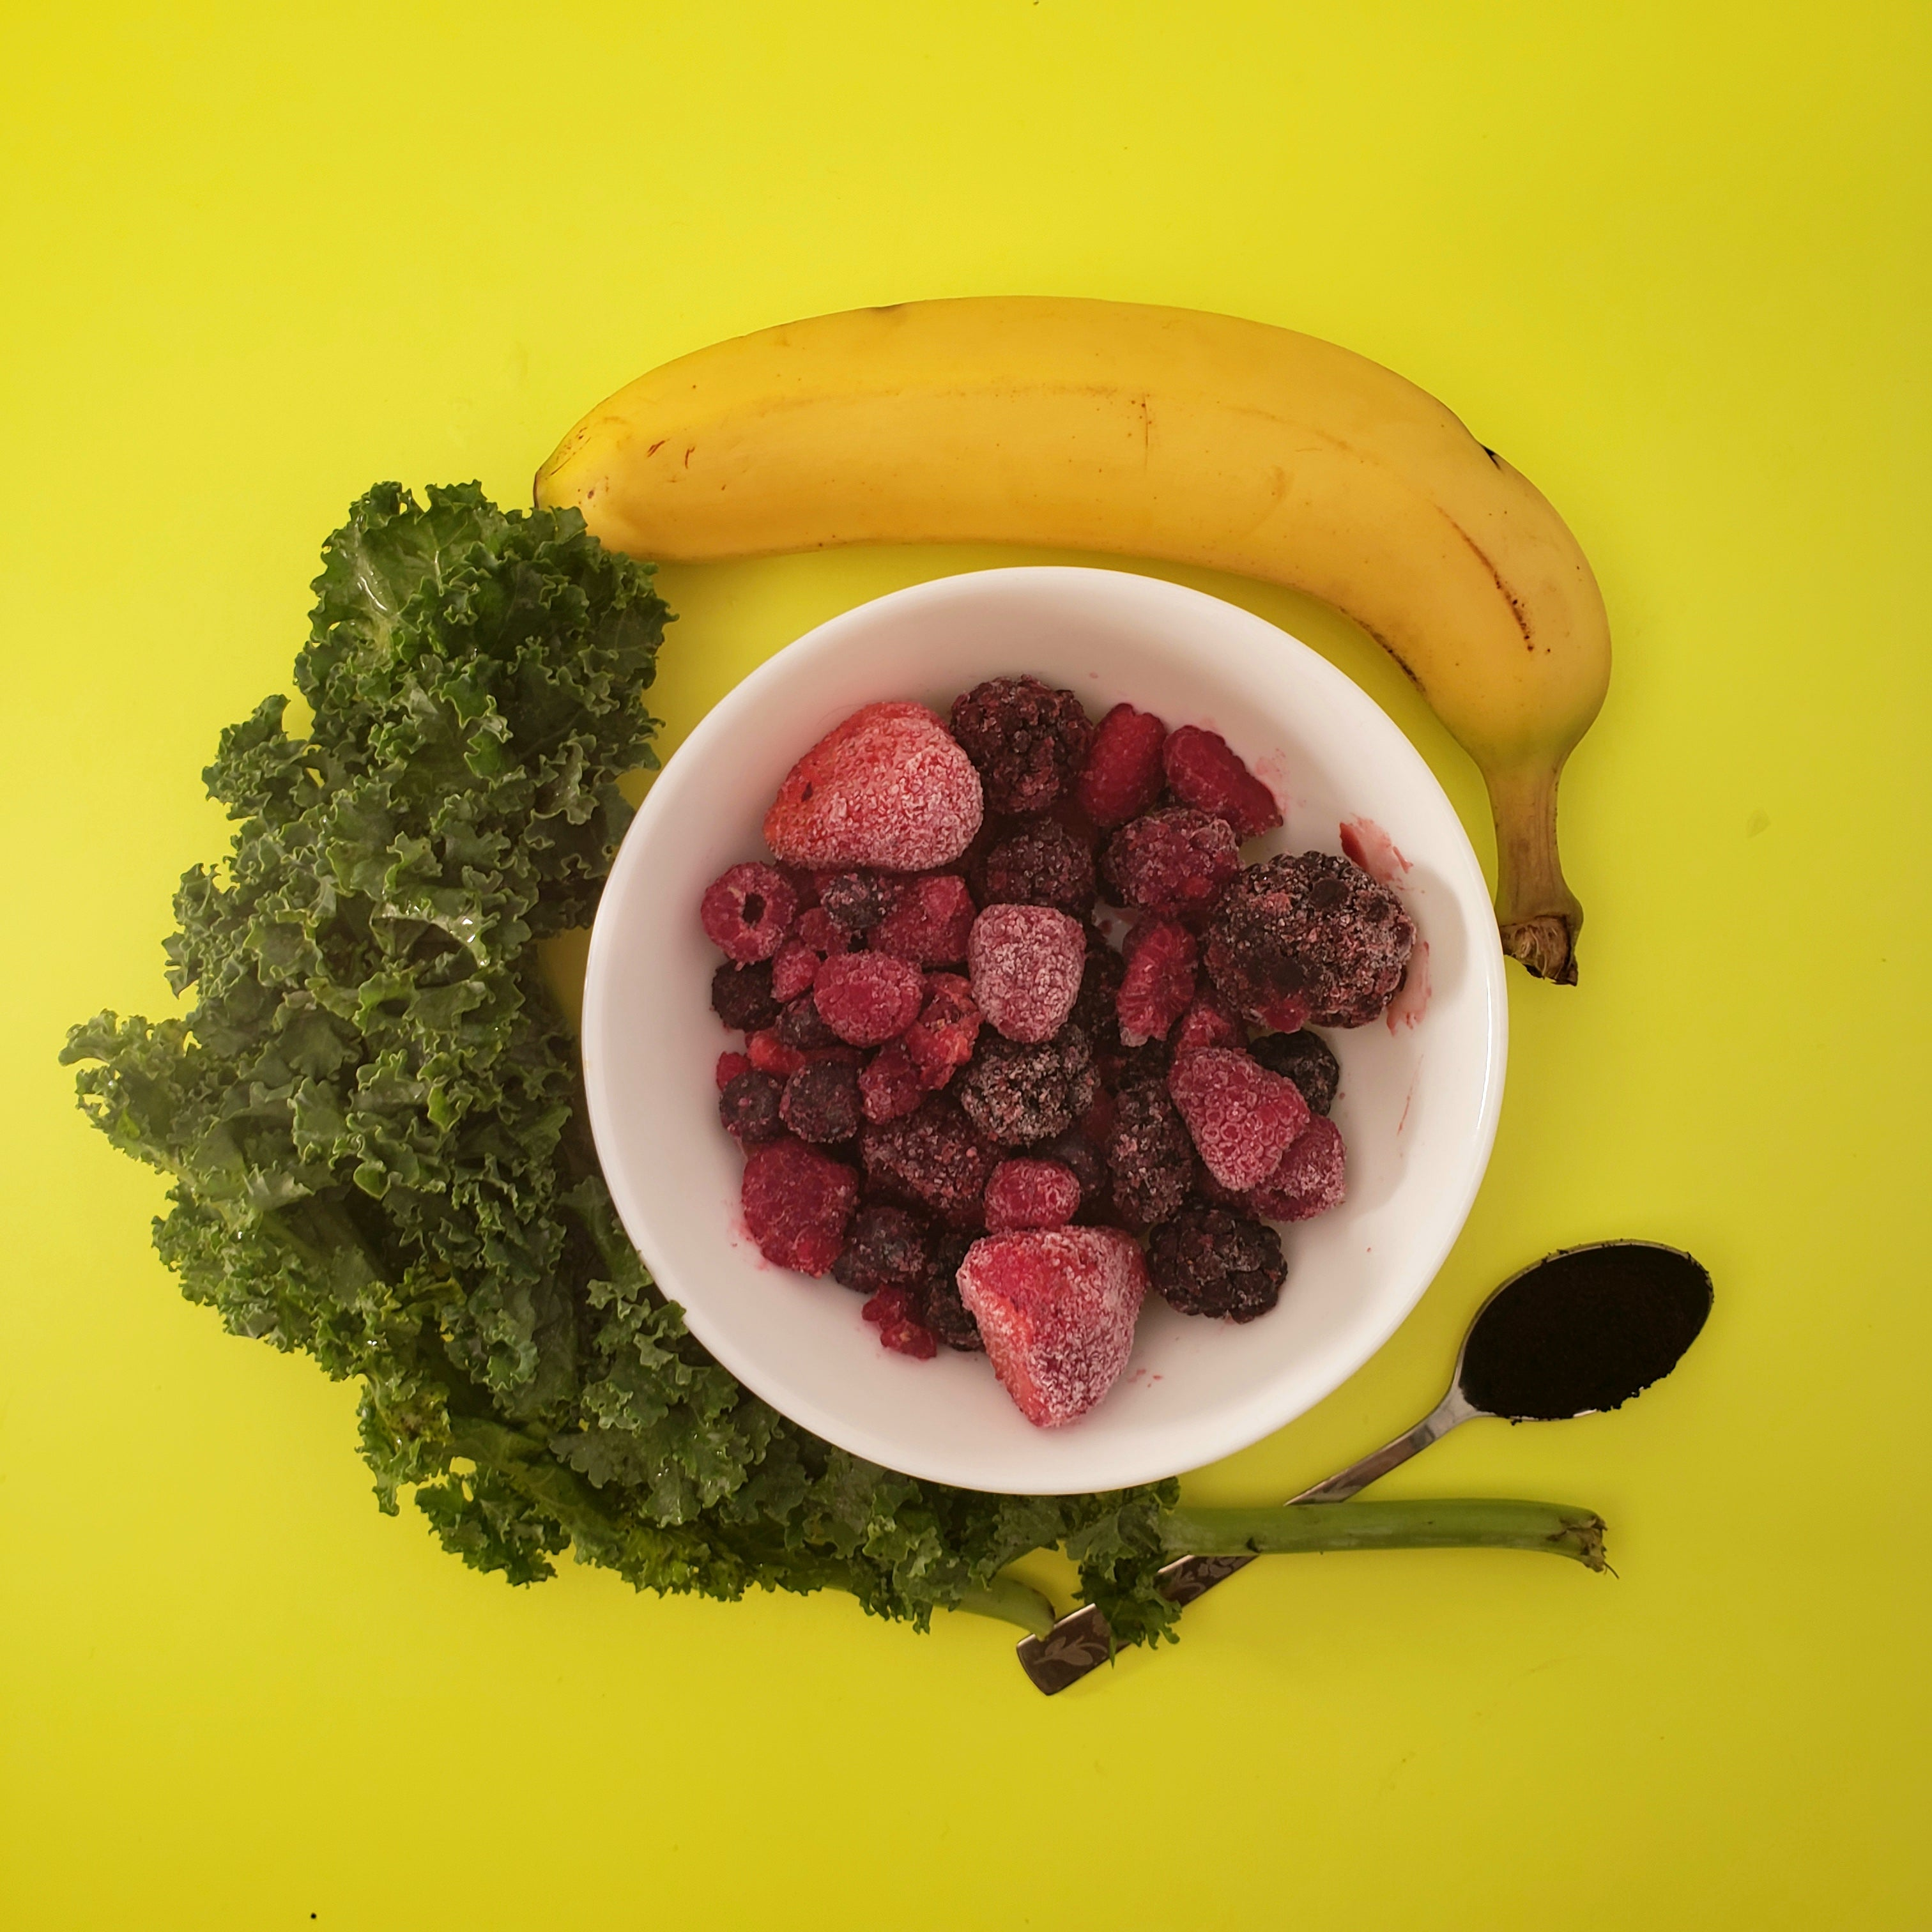 Smoov berry exotic blend, 1 cup kale, 1 cup mixed berries, 1 banana